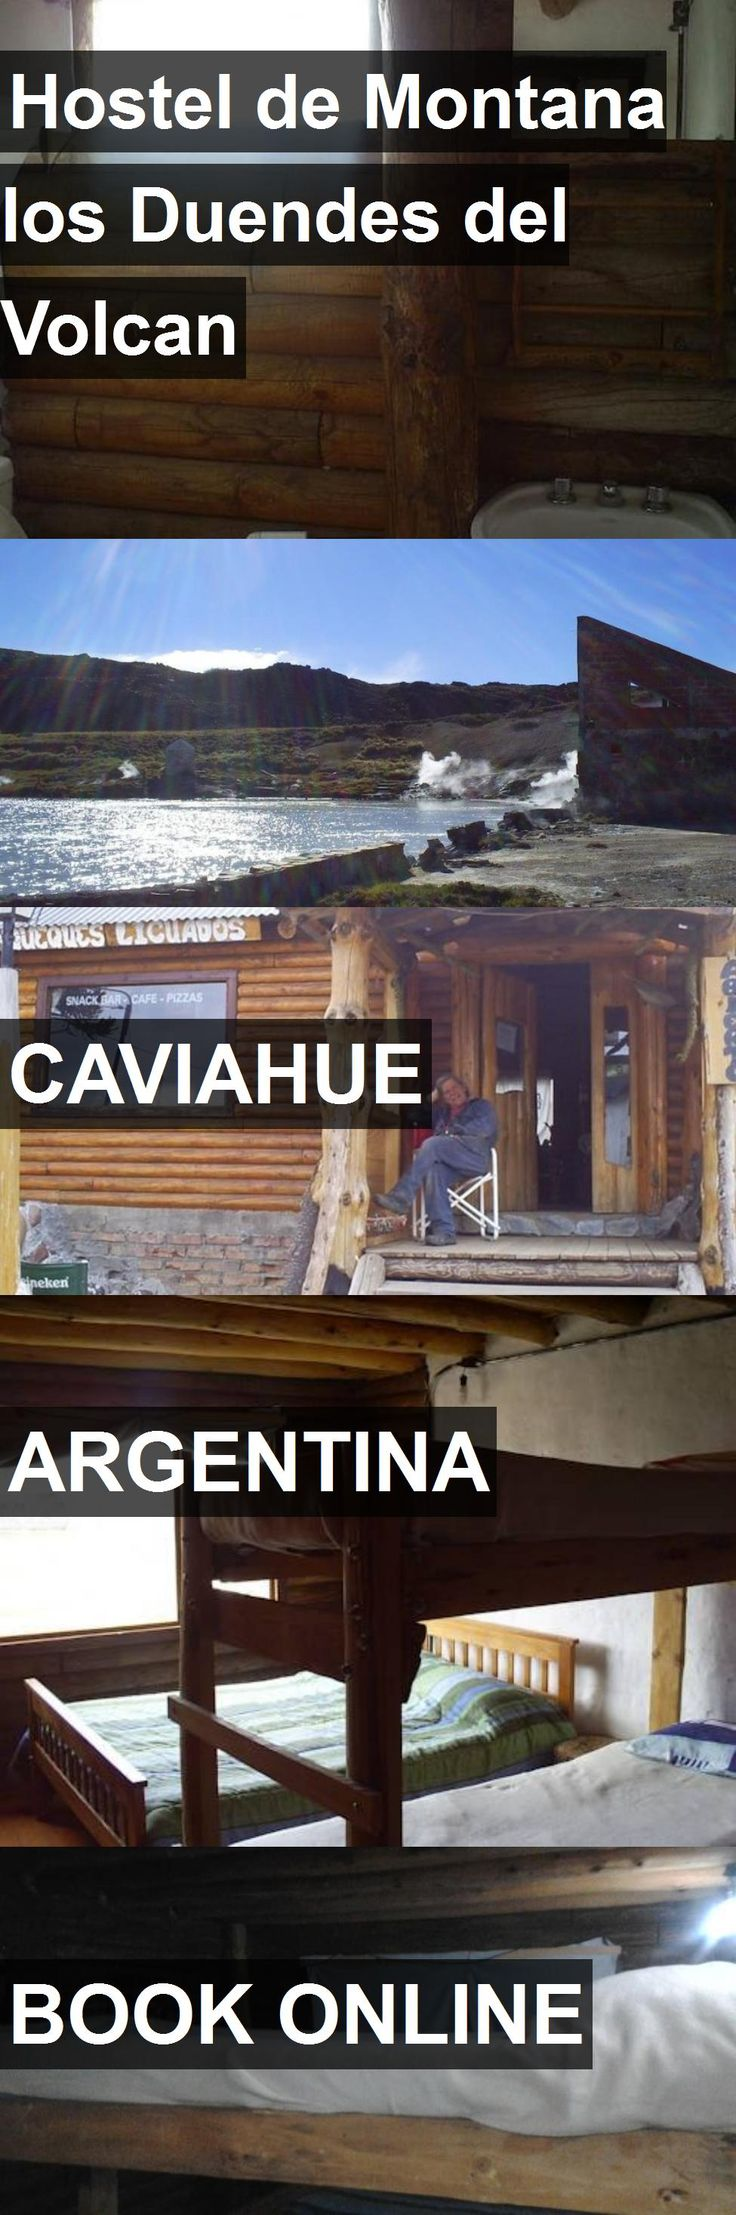 Hostel de Montana los Duendes del Volcan in Caviahue, Argentina. For more information, photos, reviews and best prices please follow the link. #Argentina #Caviahue #travel #vacation #hostel